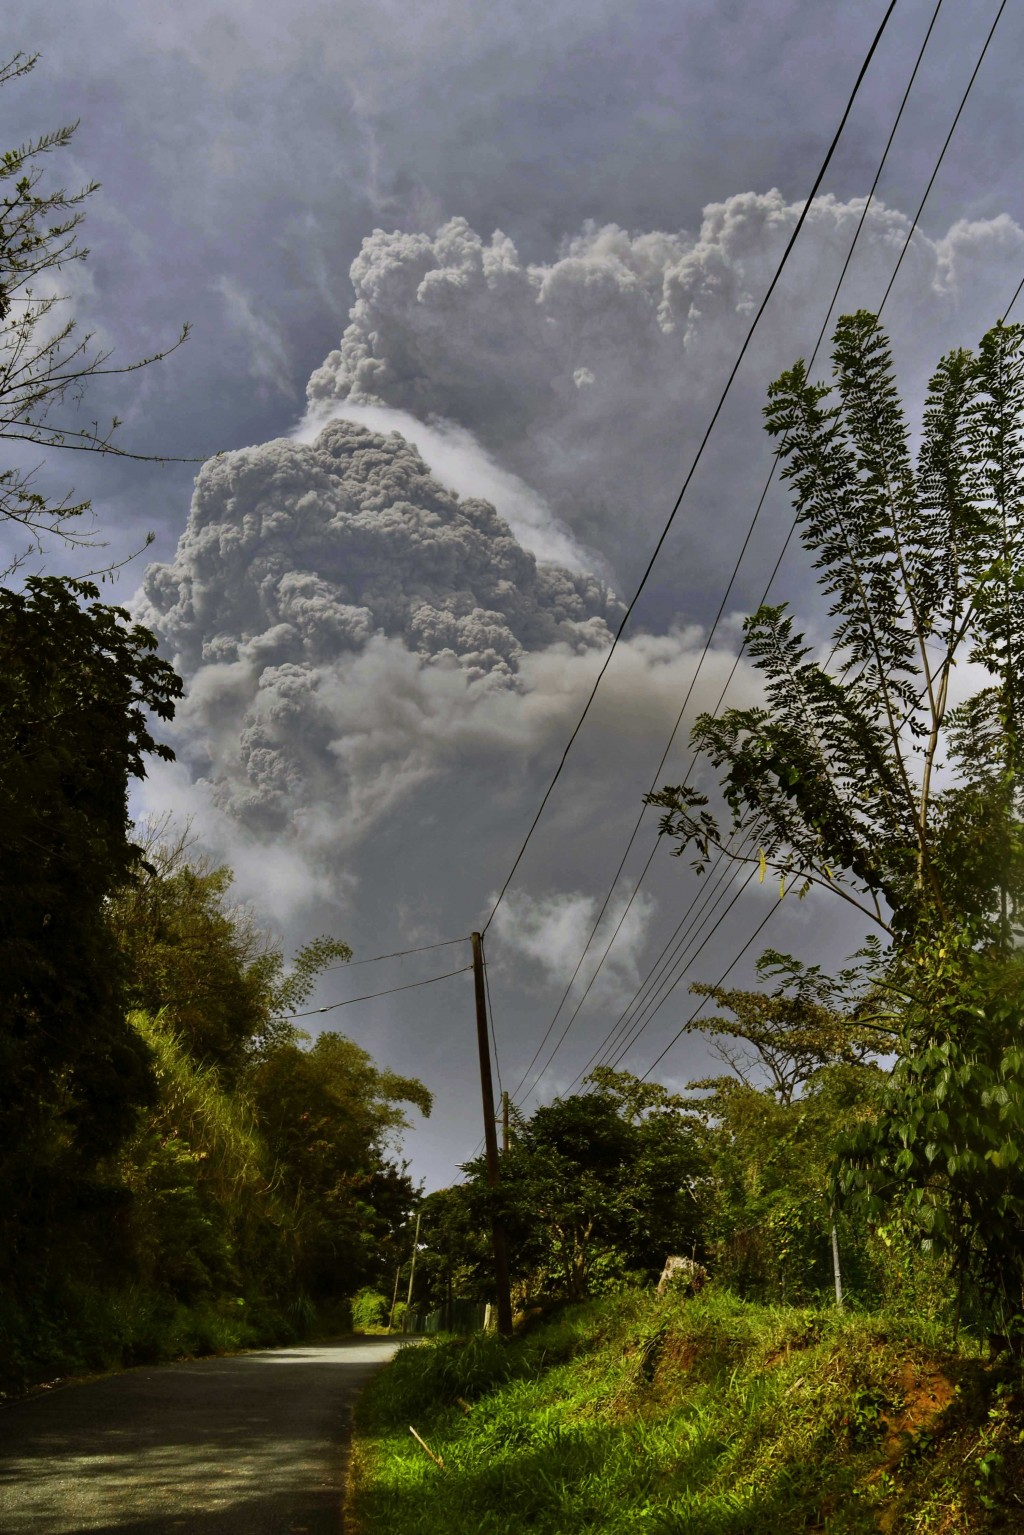 Plumes of ash rise from the La Soufriere volcano as it erupts on the eastern Caribbean island of St. Vincent, as seen from Chateaubelair, Friday, Apri...